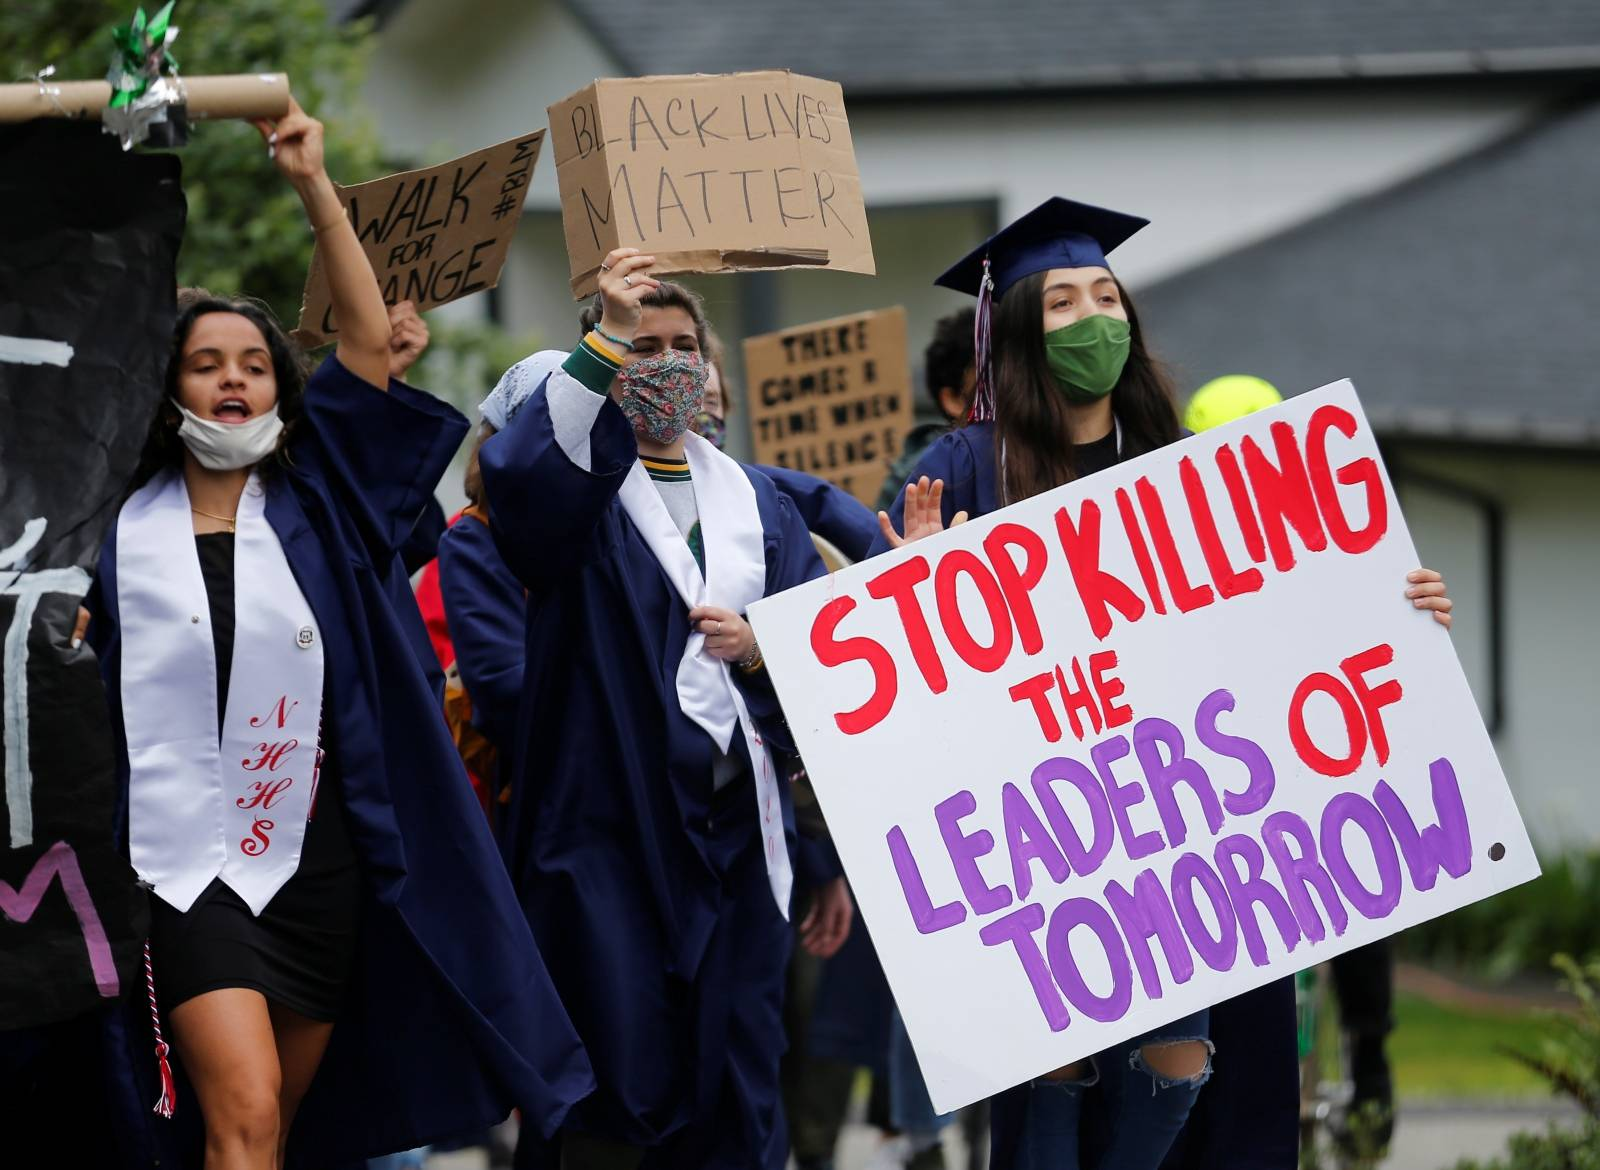 Nathan Hale High School seniors join with others to protest against racial inequality in the aftermath of the death in Minneapolis police custody of George Floyd on their graduation day in Seattle